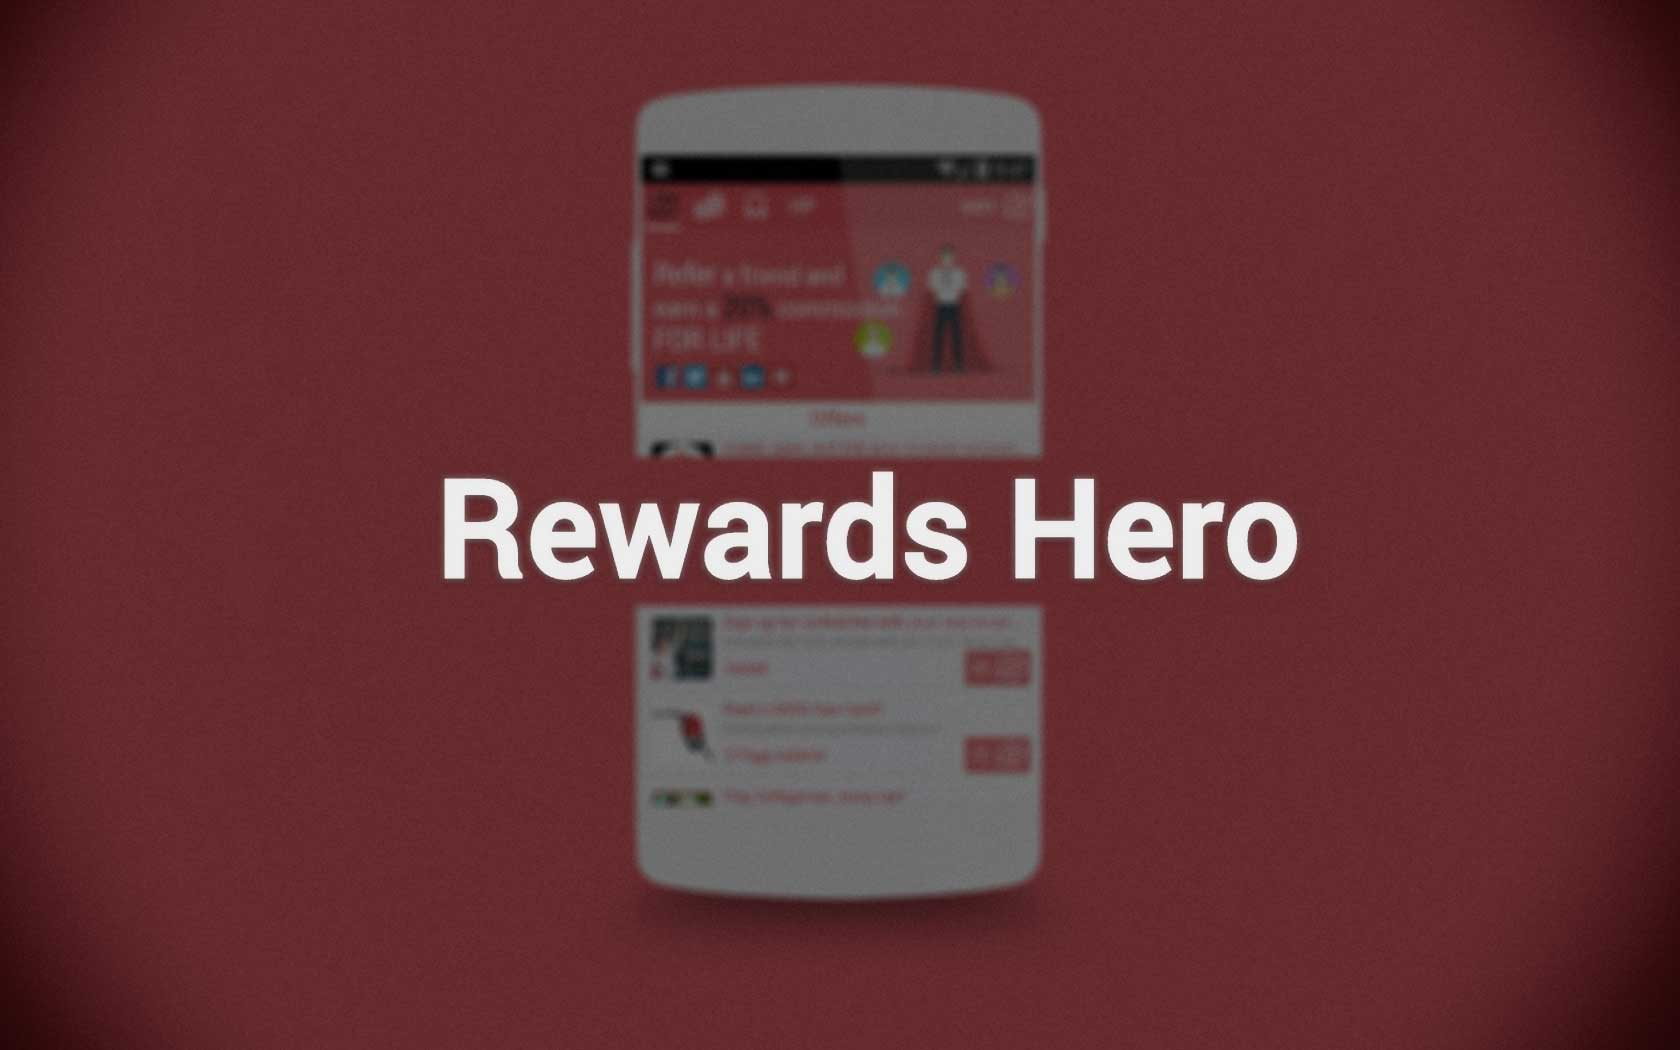 Rewards Hero